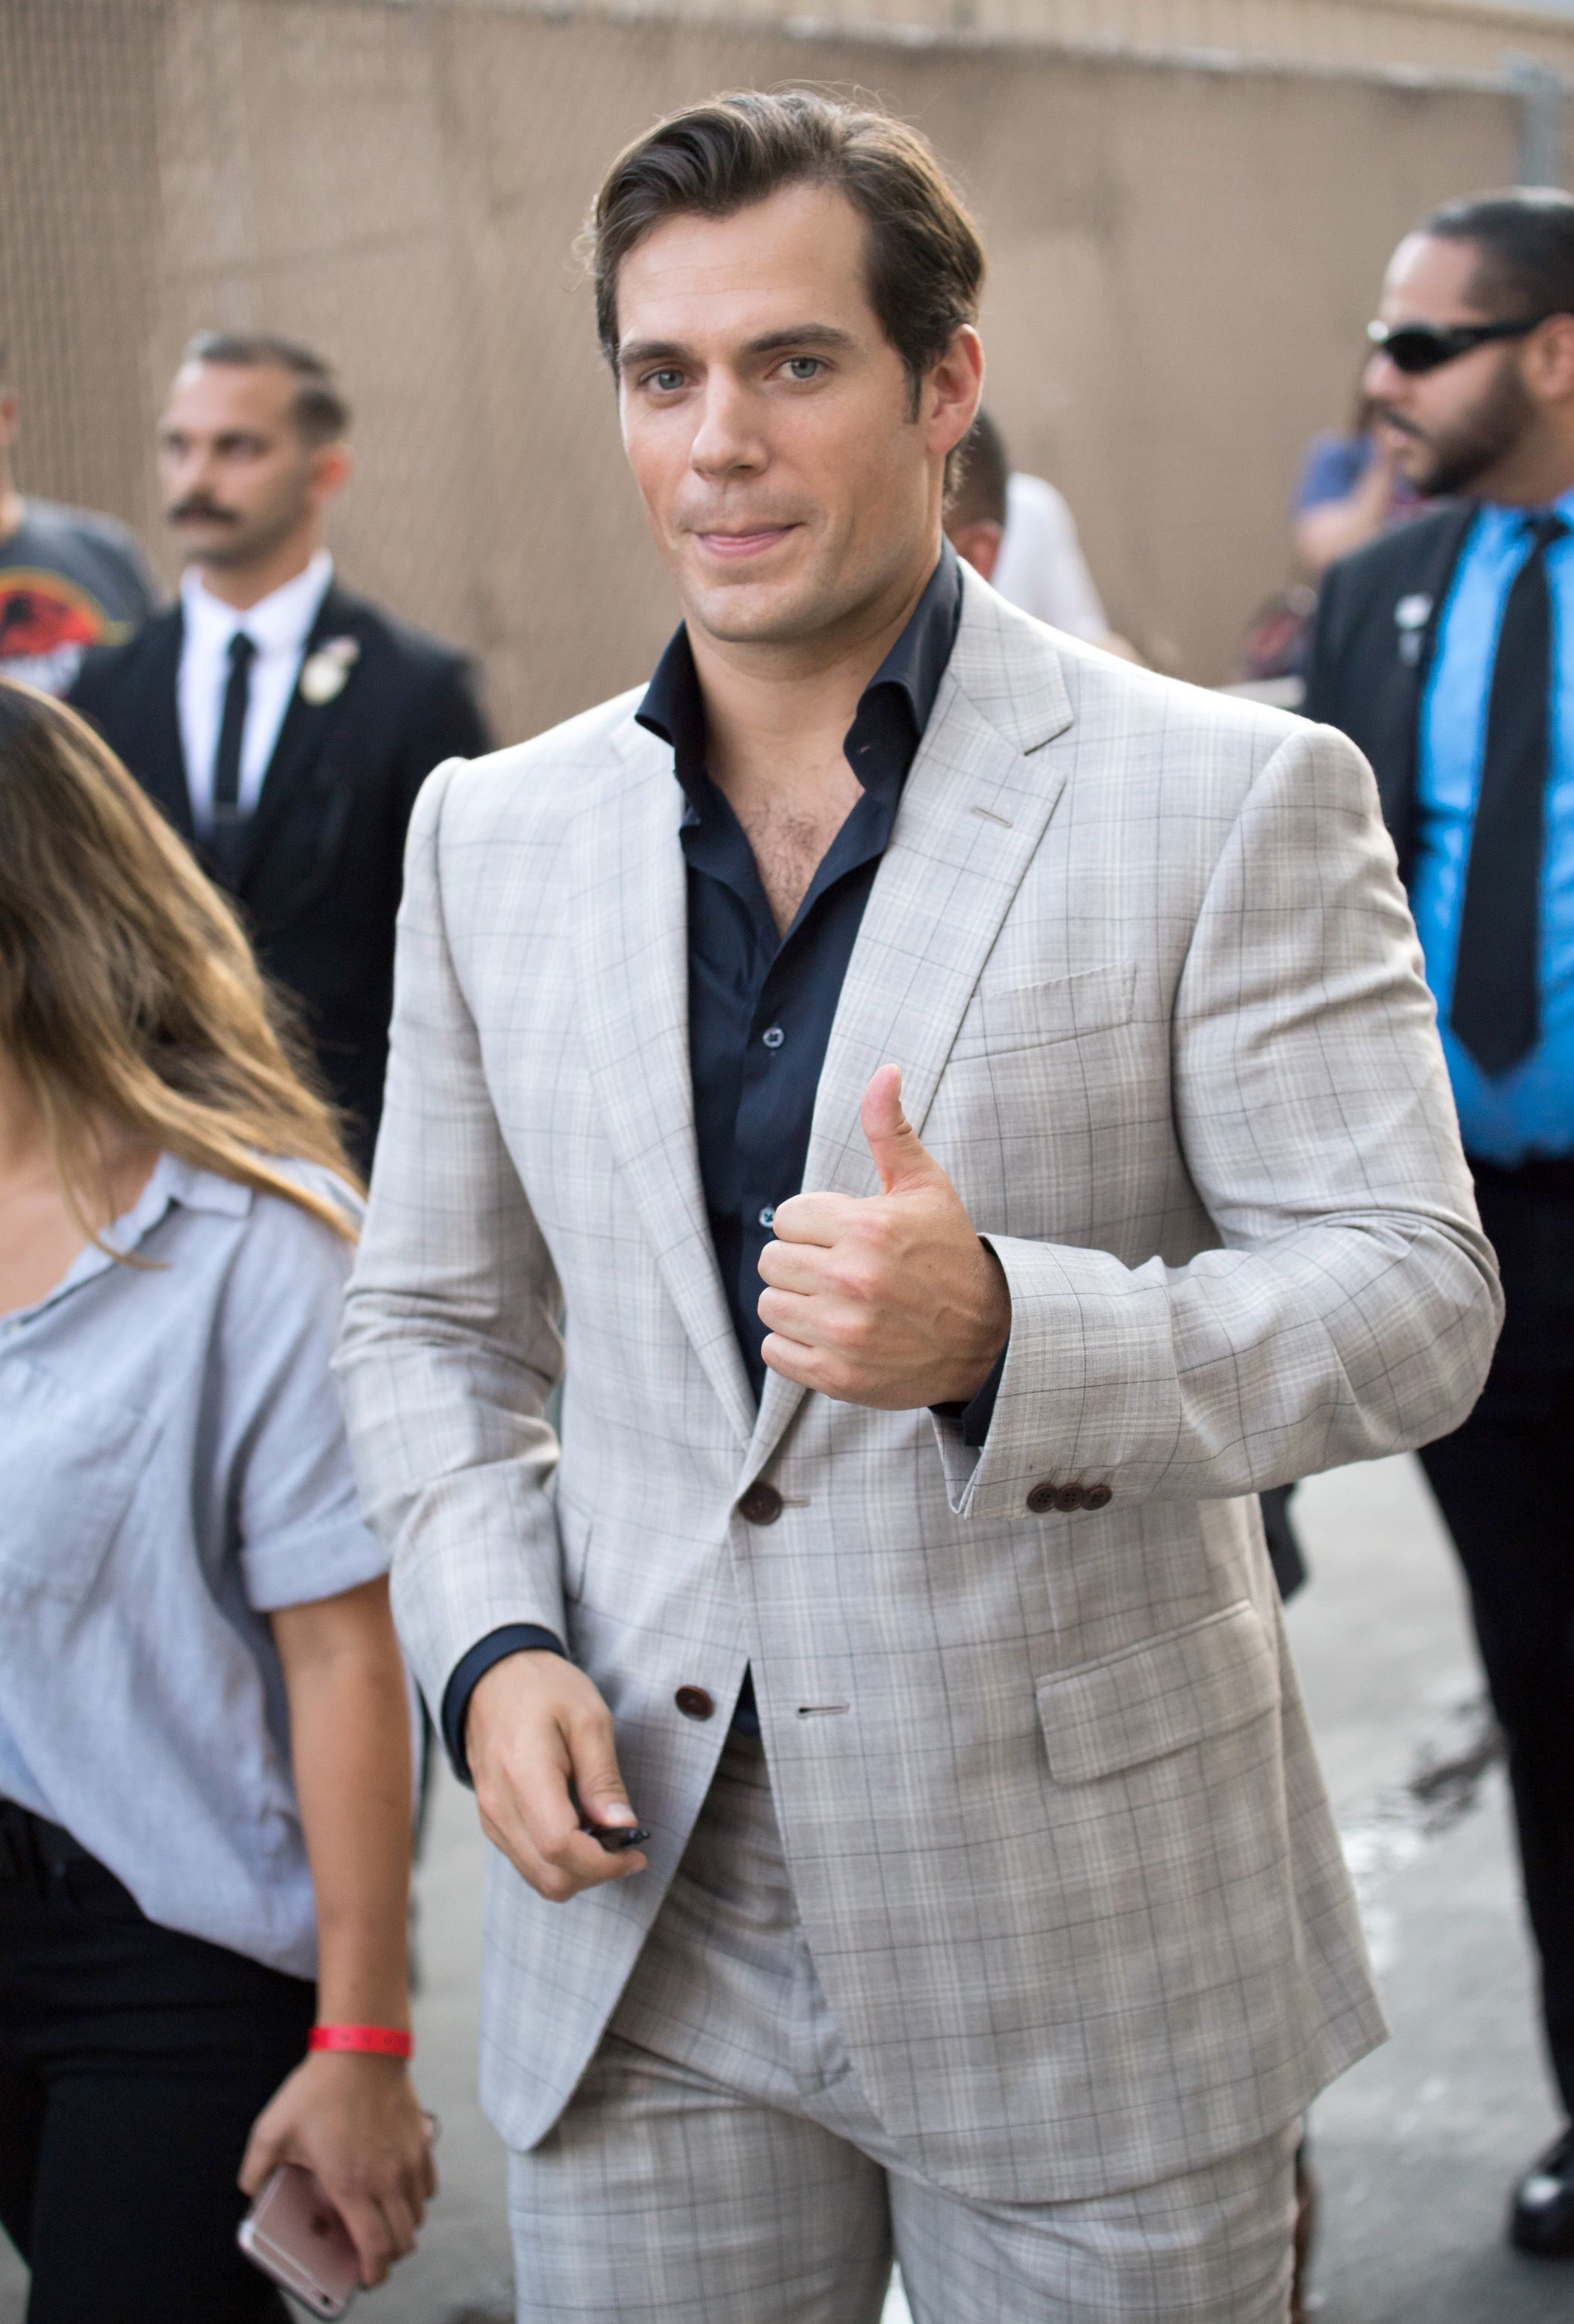 """Henry Cavill flashes a thumbs up as he arrives at the """"Jimmy Kimmel Live!"""" studios in Hollywood on July 25, 2018."""